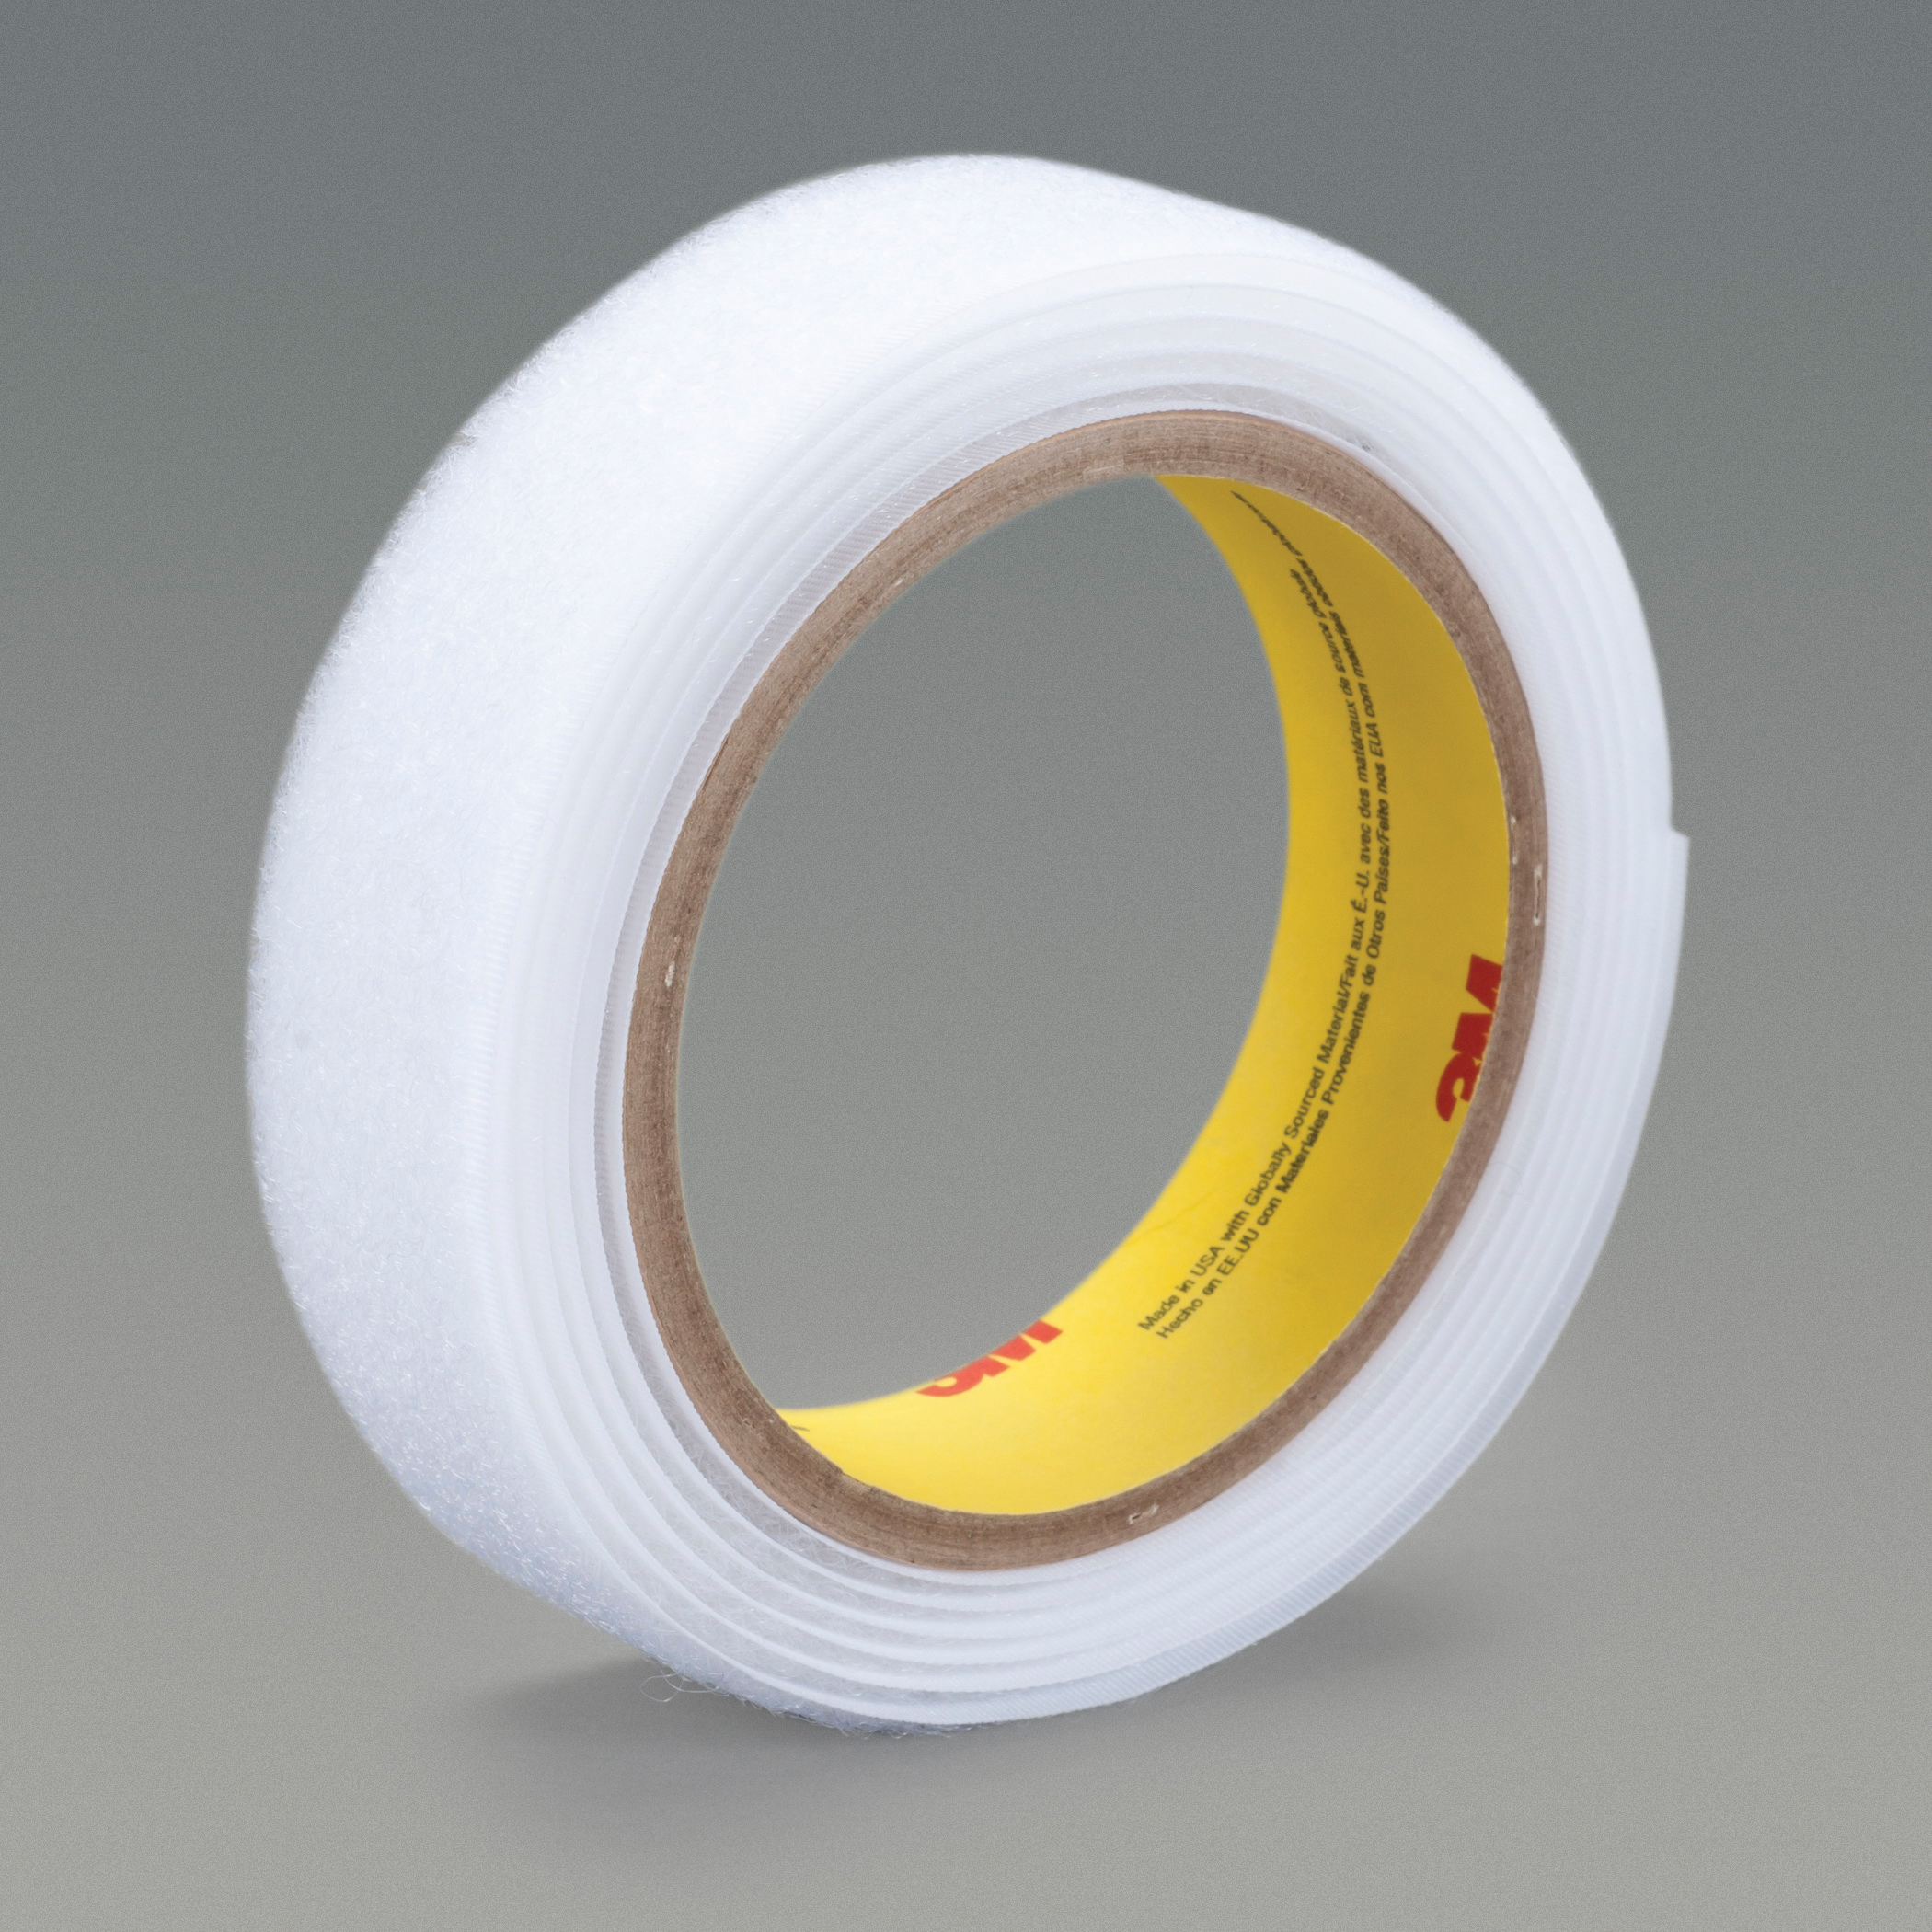 3M™ 021200-40662 Reclosable Hook Fastener Tape, 25 yd L x 1 in W, 0.15 in THK Engaged, Synthetic Rubber Adhesive, Woven Nylon Backing, White